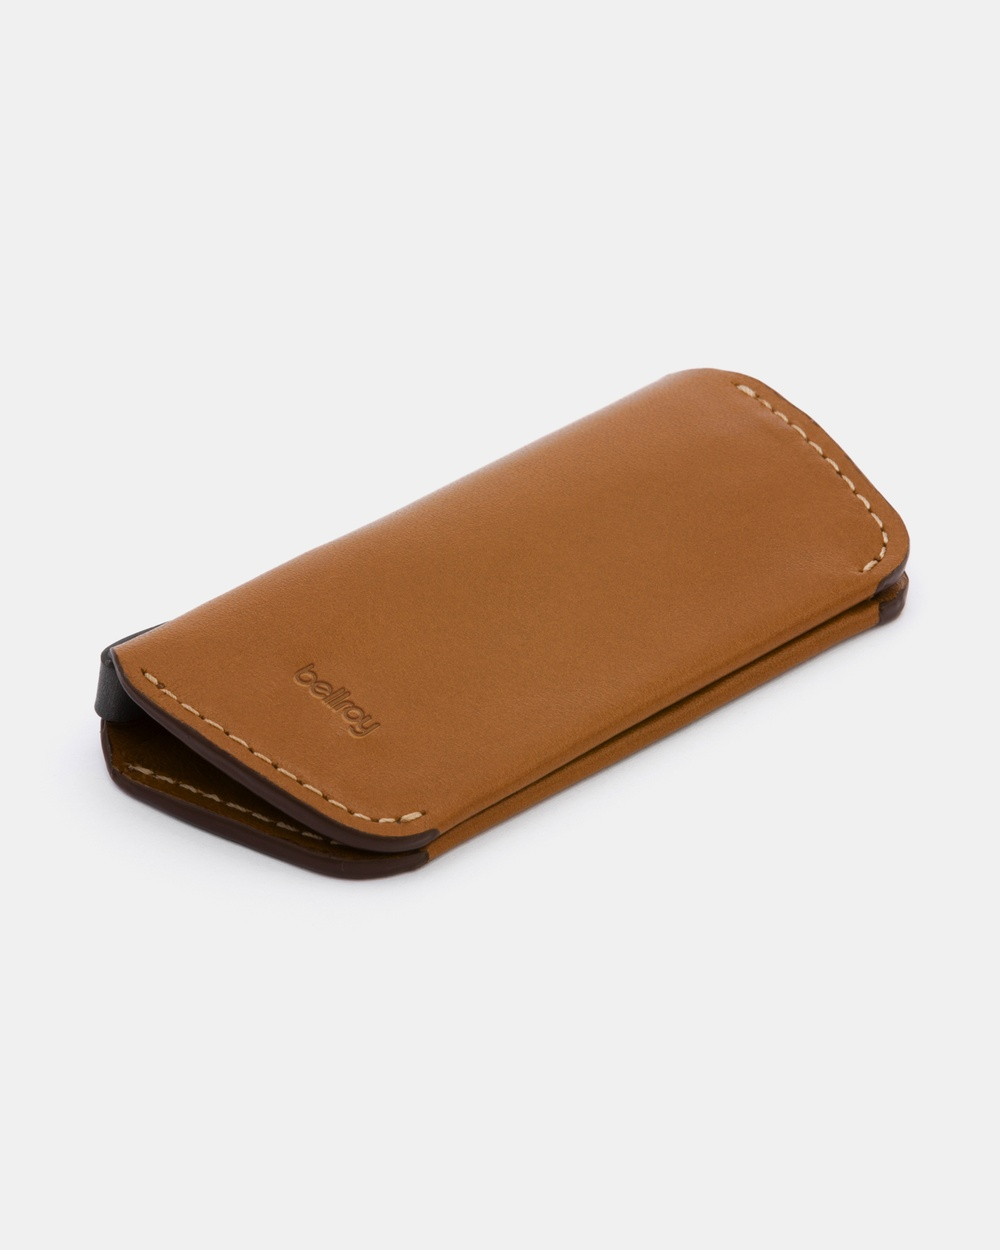 Bellroy Key Cover Plus Second Edition Rings Brown